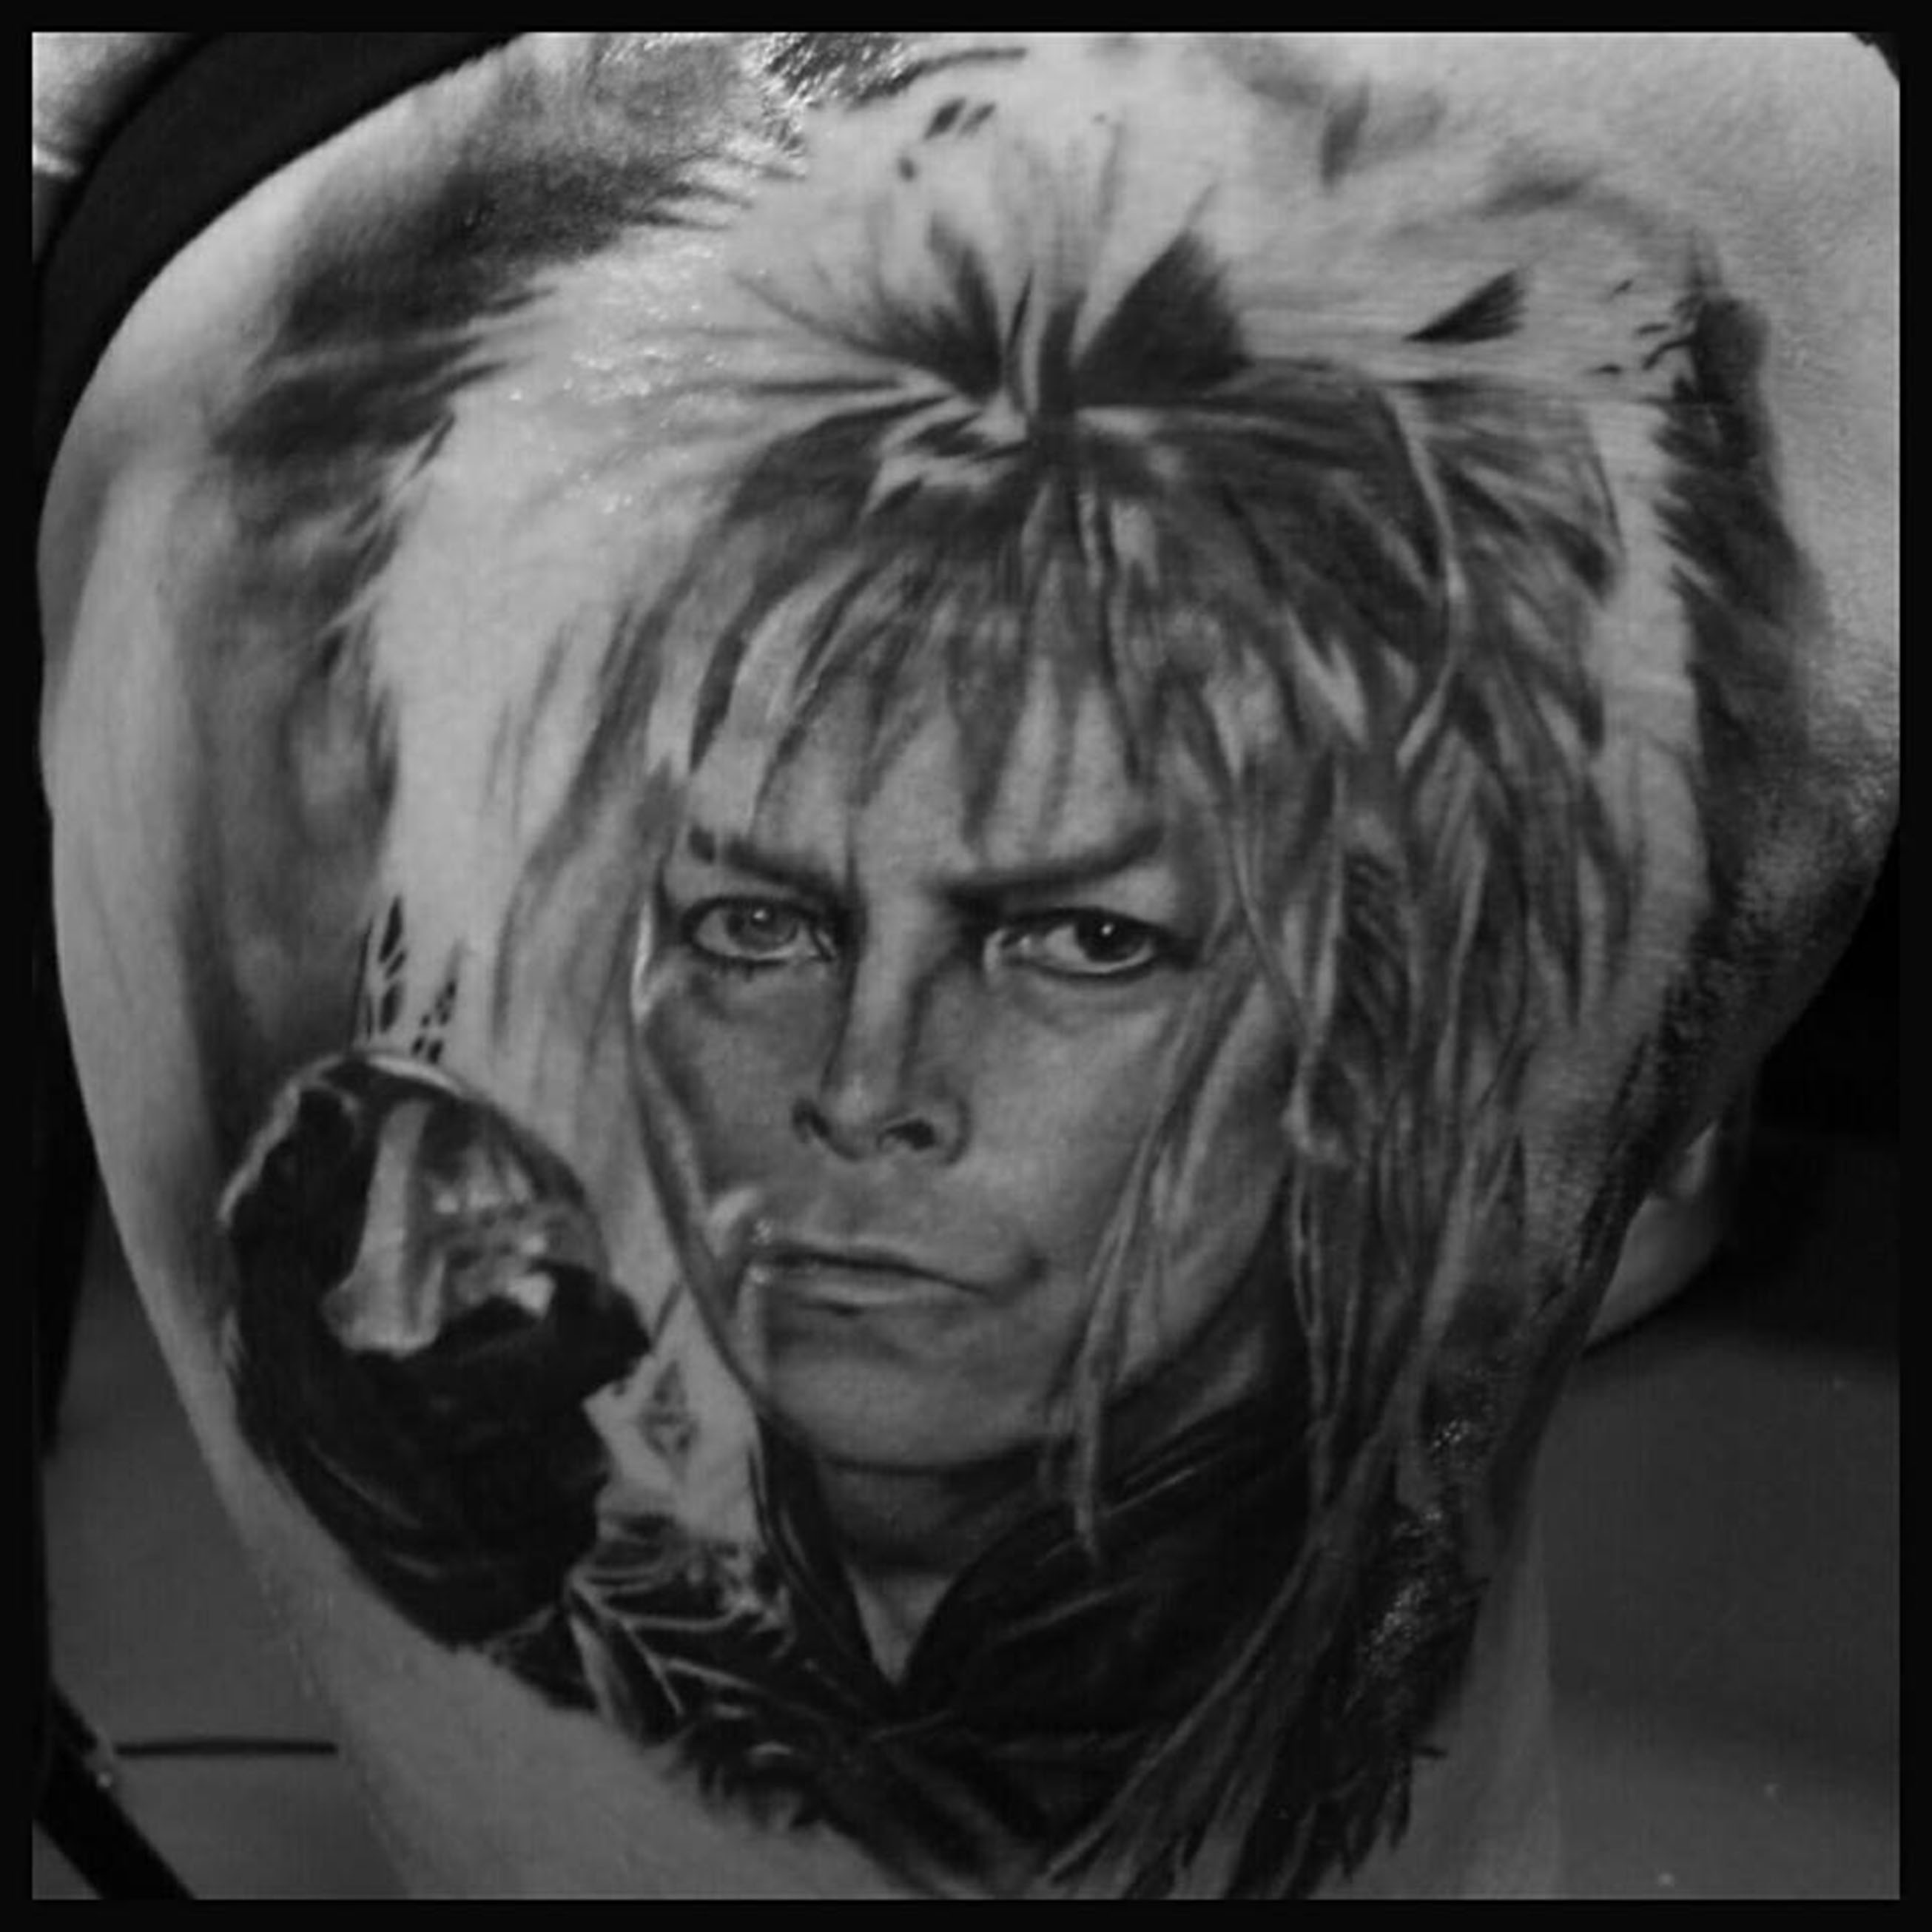 img alt=artist-david-bowie-black-grey-tattoo-realistic-tattoo-dallas-tattoo-arti